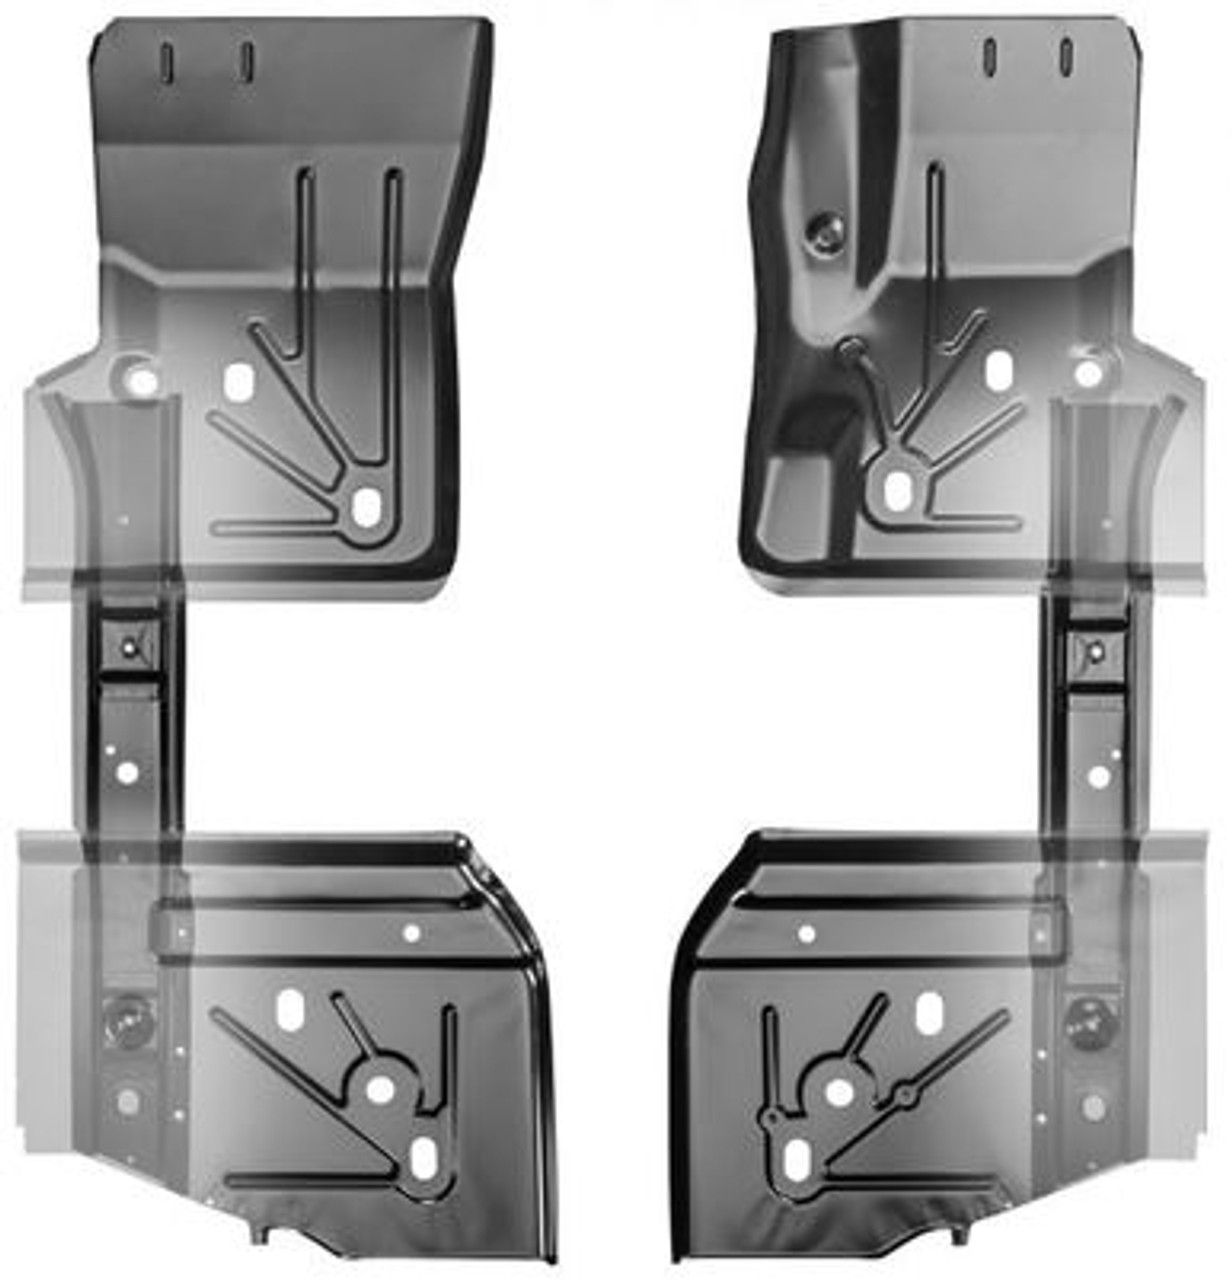 1997-06 WRANGLER TJ FLOOR PANEL / FLOOR BRACE KIT (6 pieces)